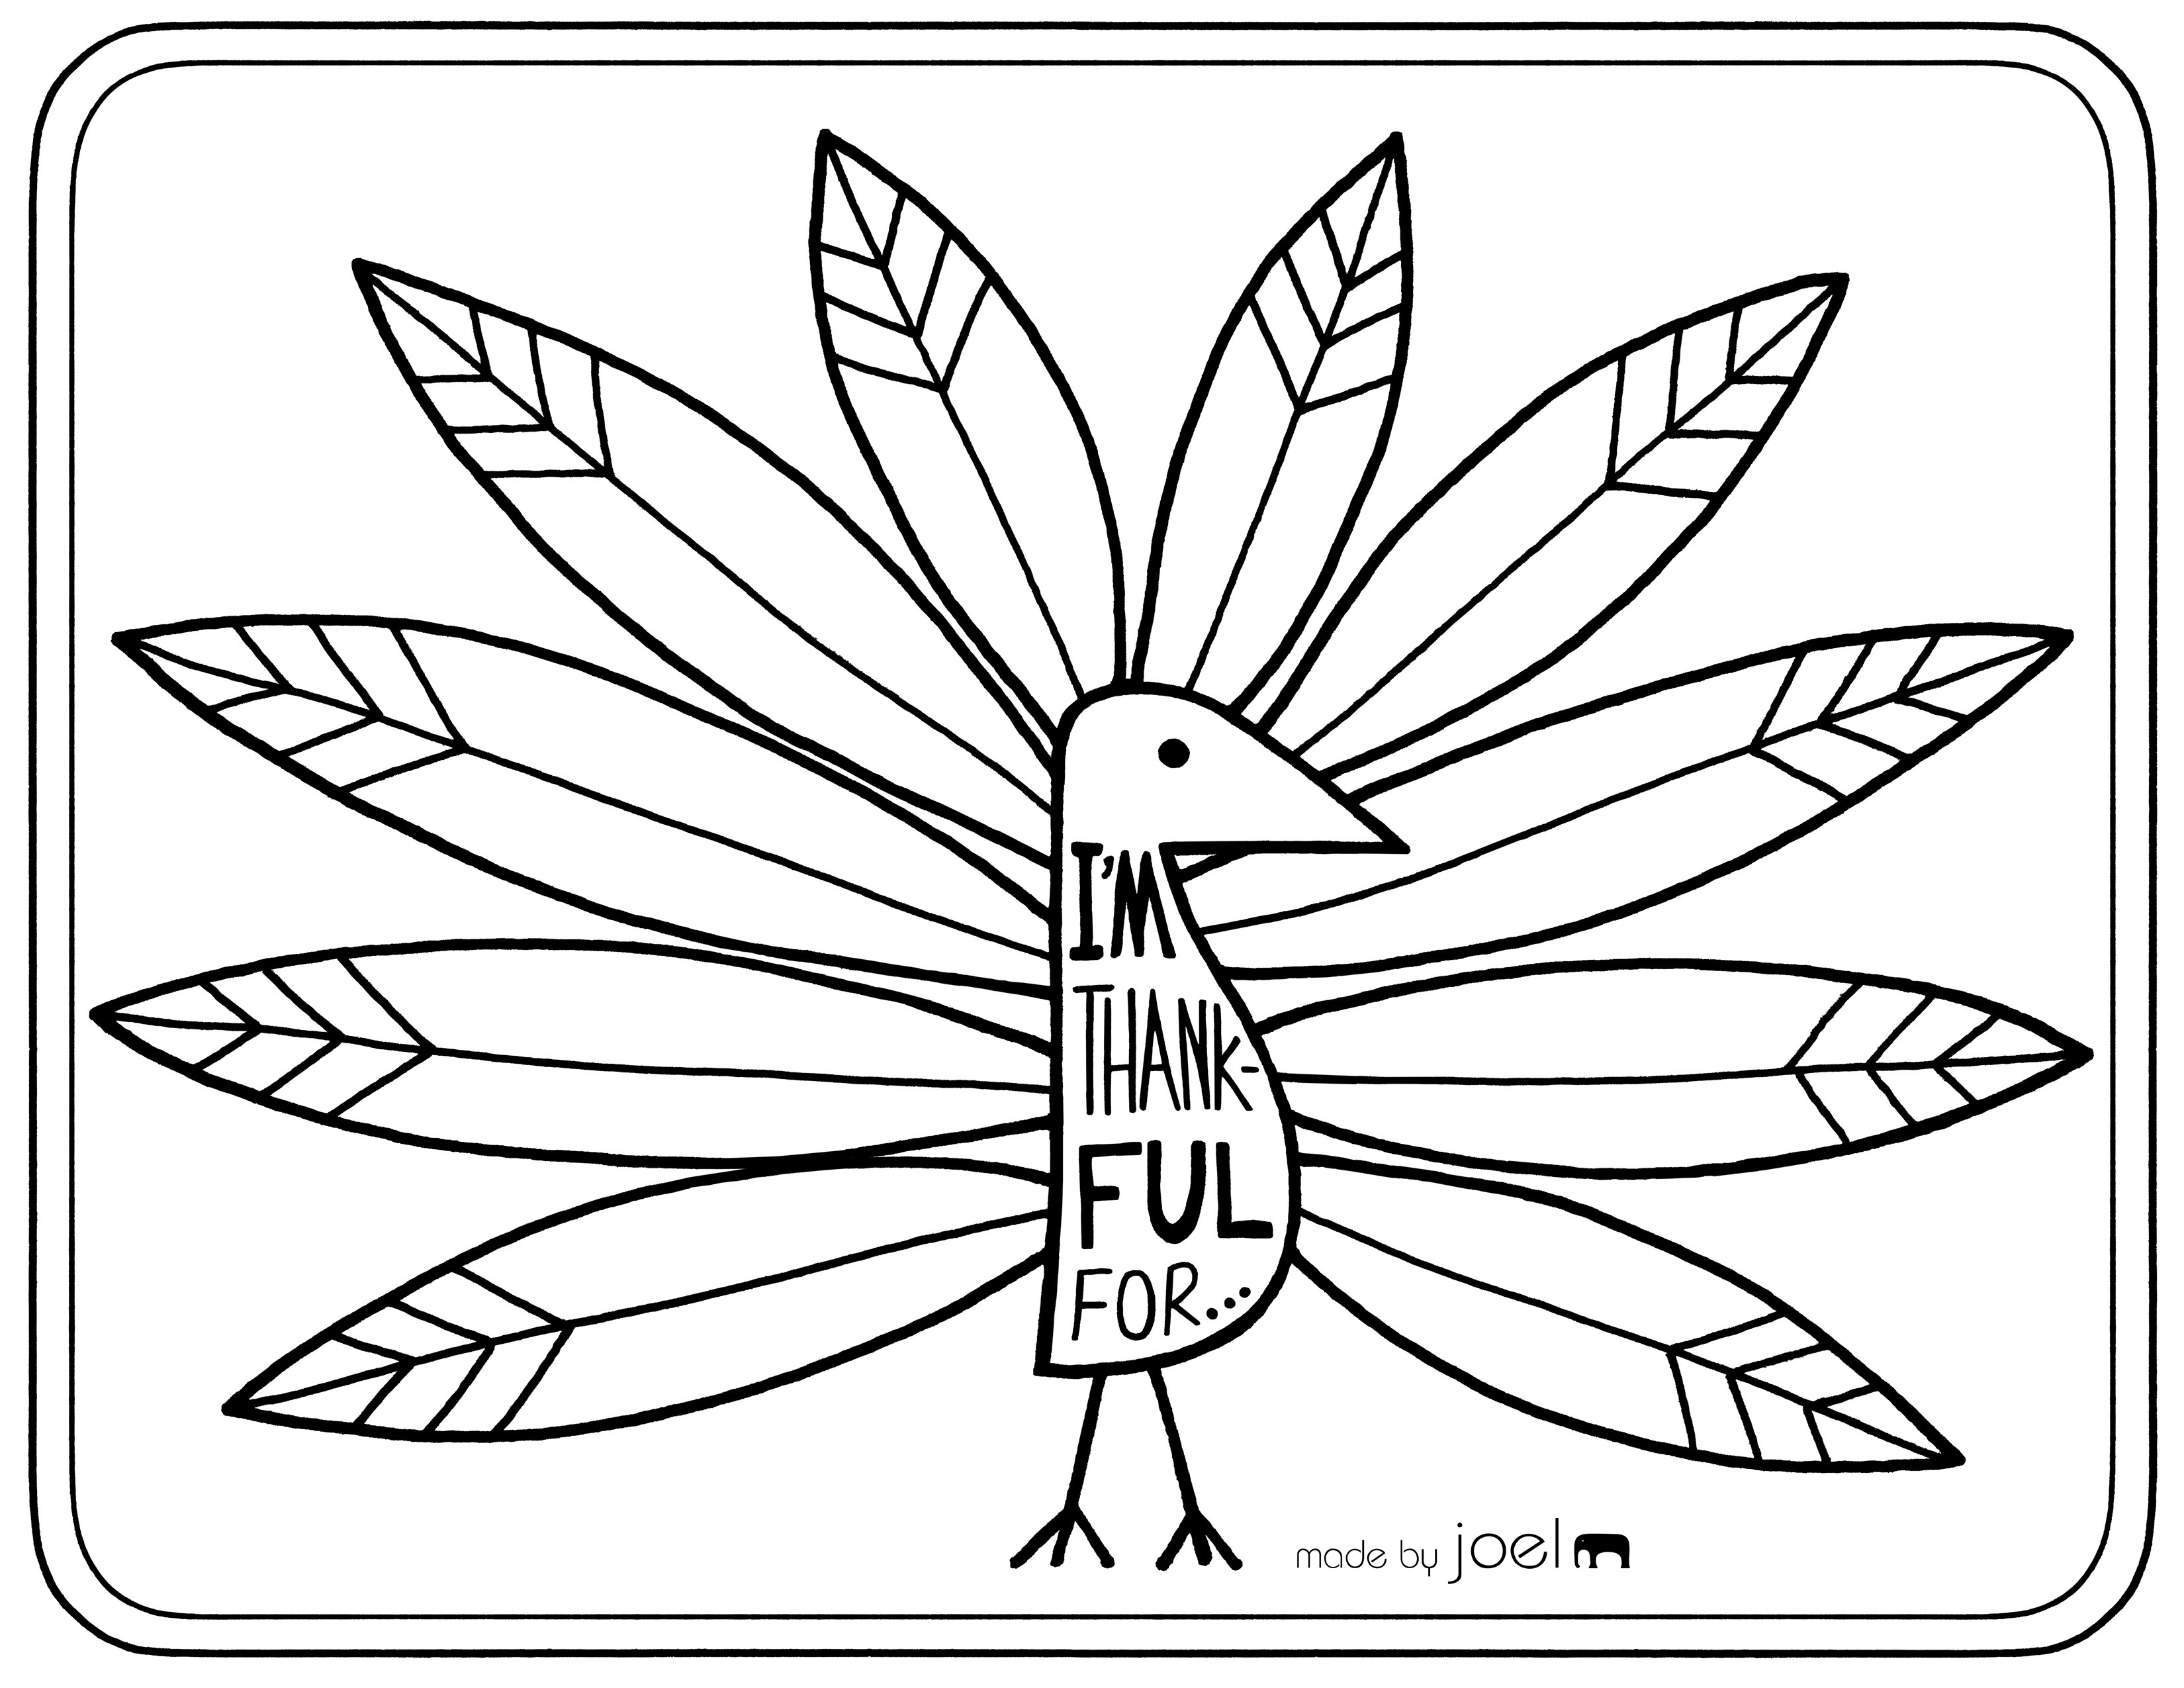 thankful coloring pages - things i am thankful coloring page